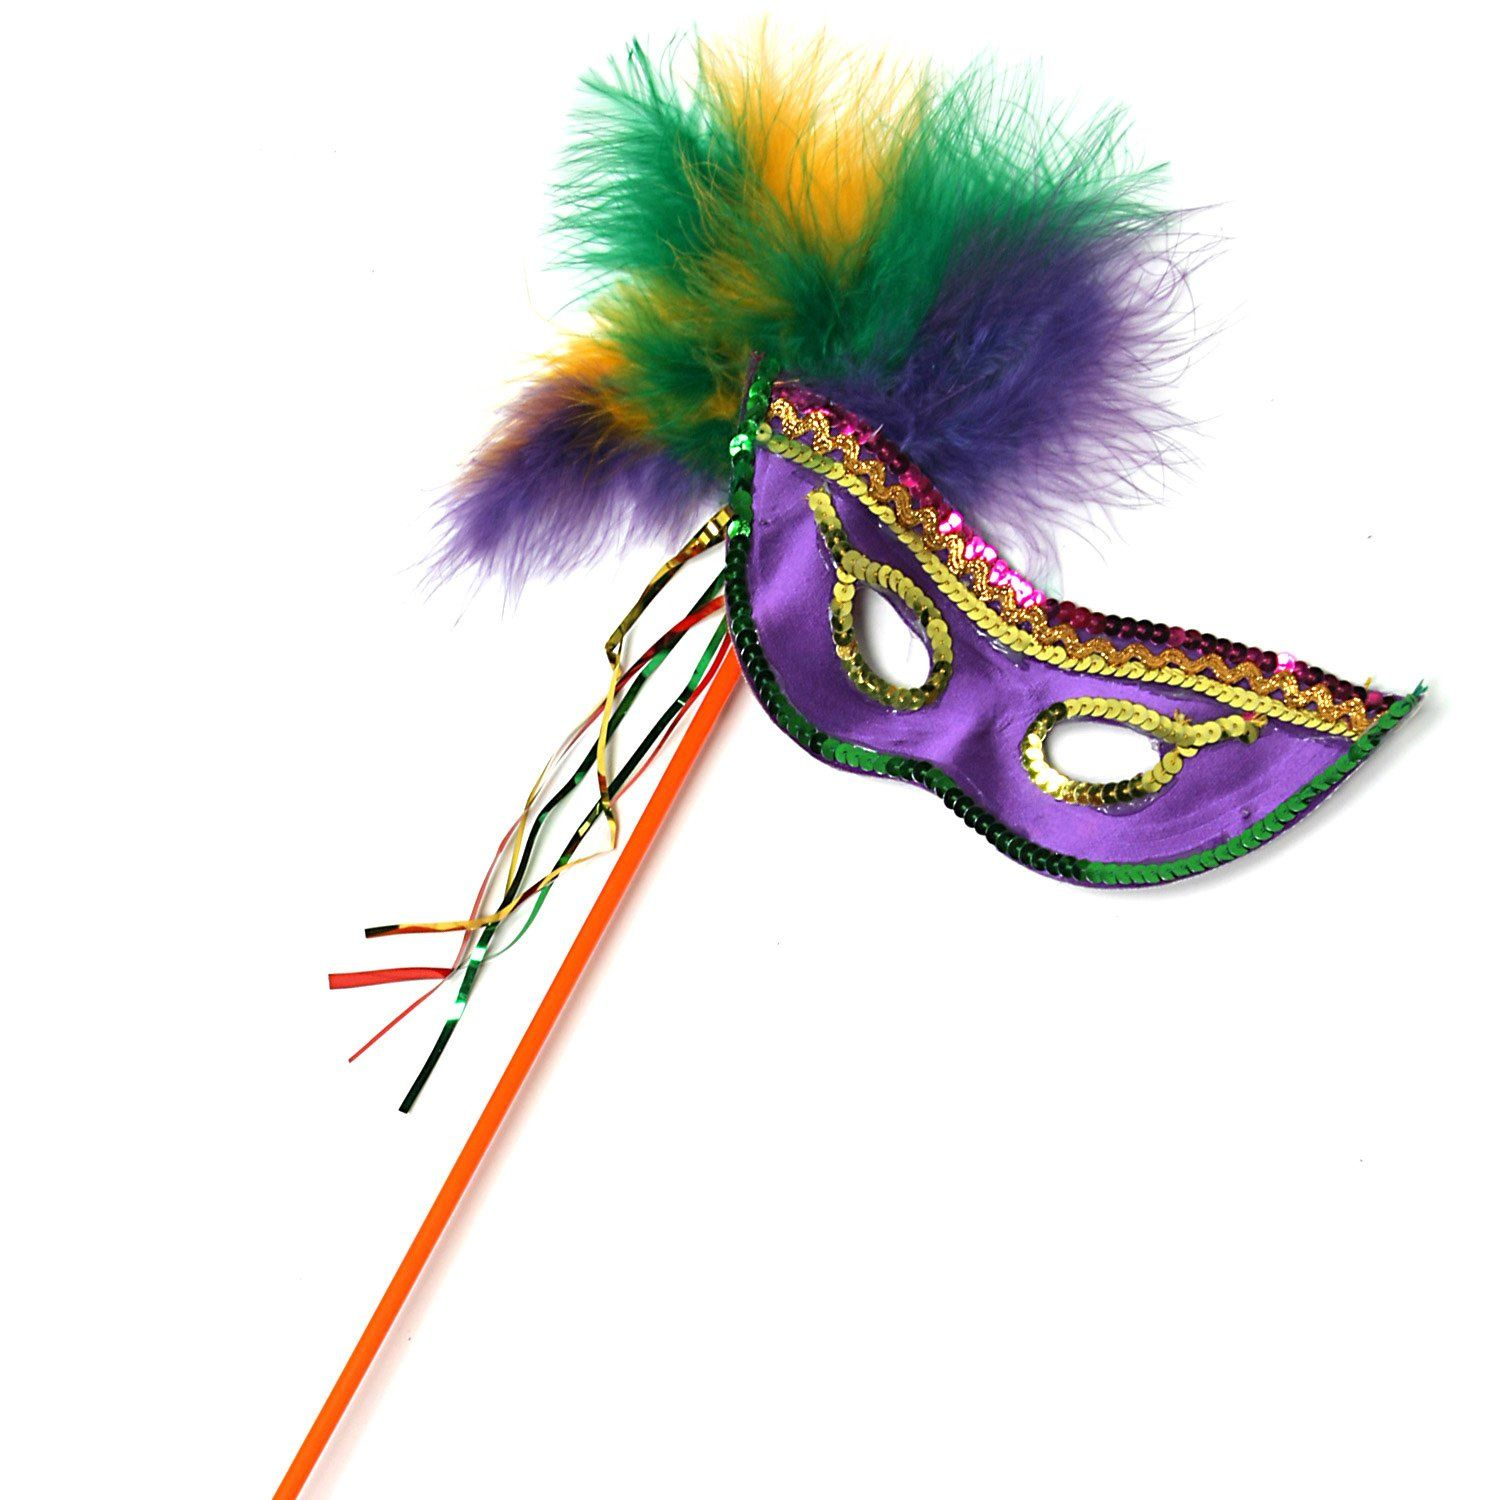 Plain Mardi Gras Masks To Decorate Unique Mardi Gras Masks  Mardigrasmask  Mask  Pinterest  Mardi Gras Design Ideas